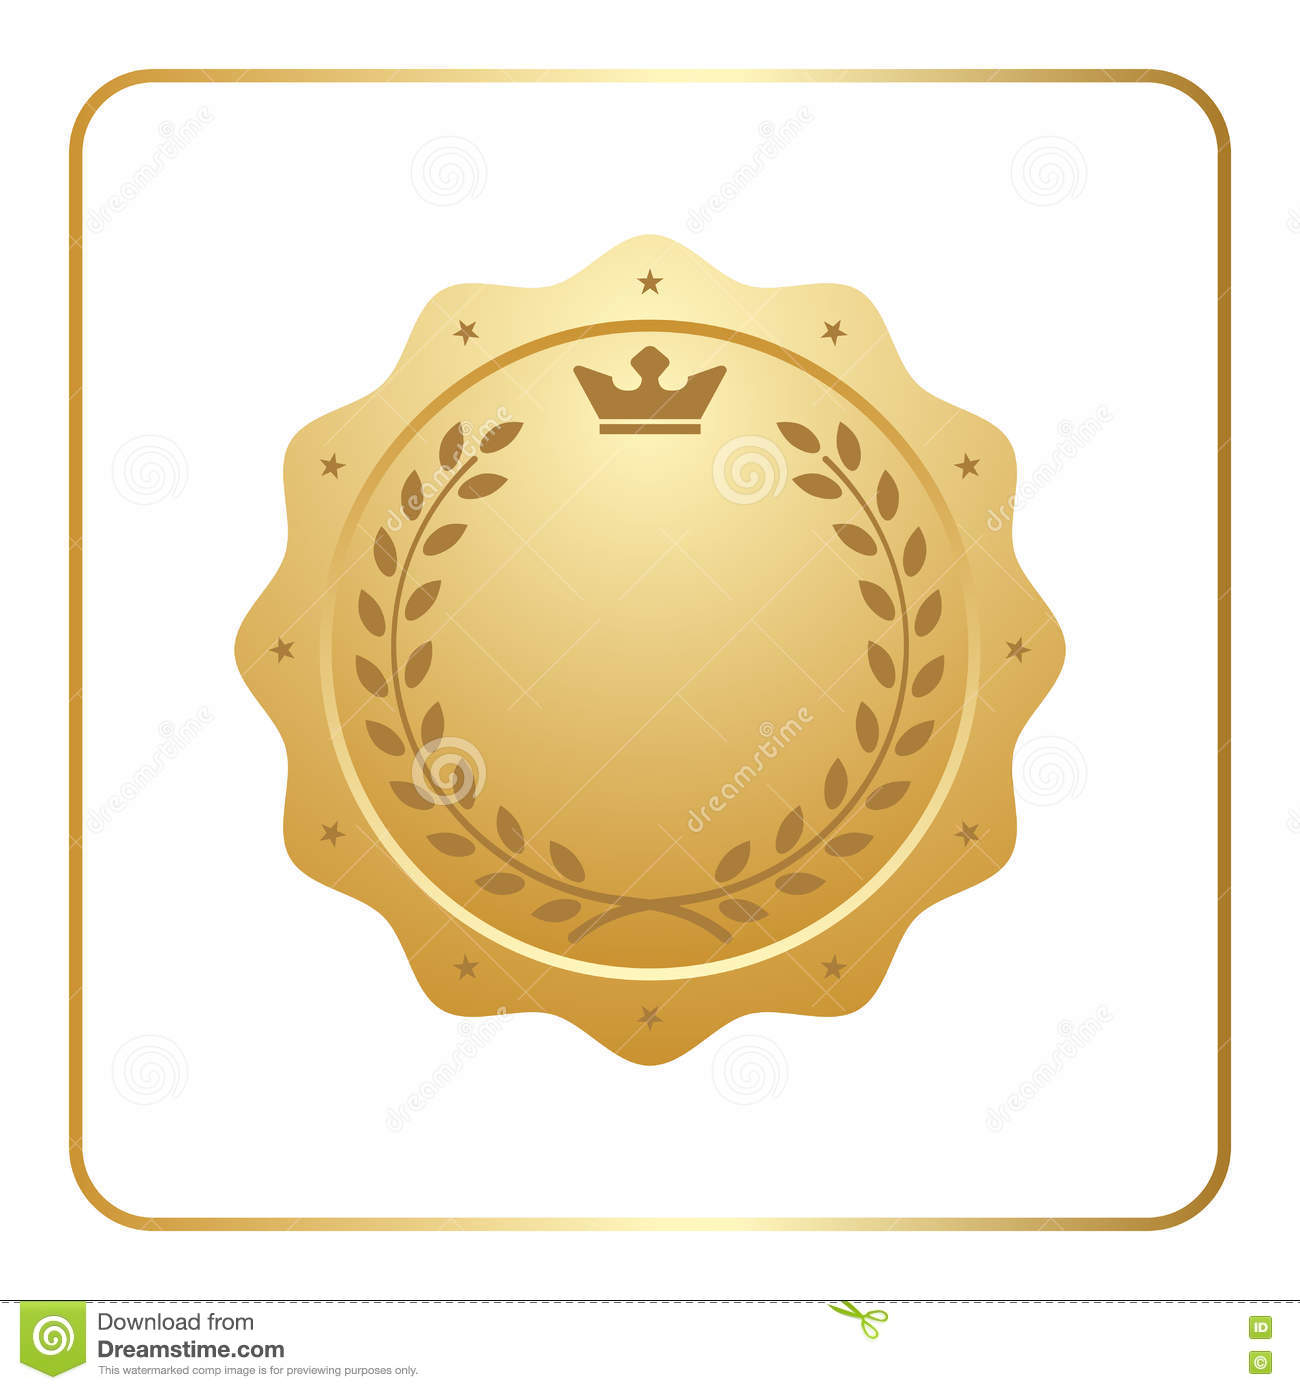 Seal Award Gold Icon Blank Medal Stock Vector Illustration Of Template